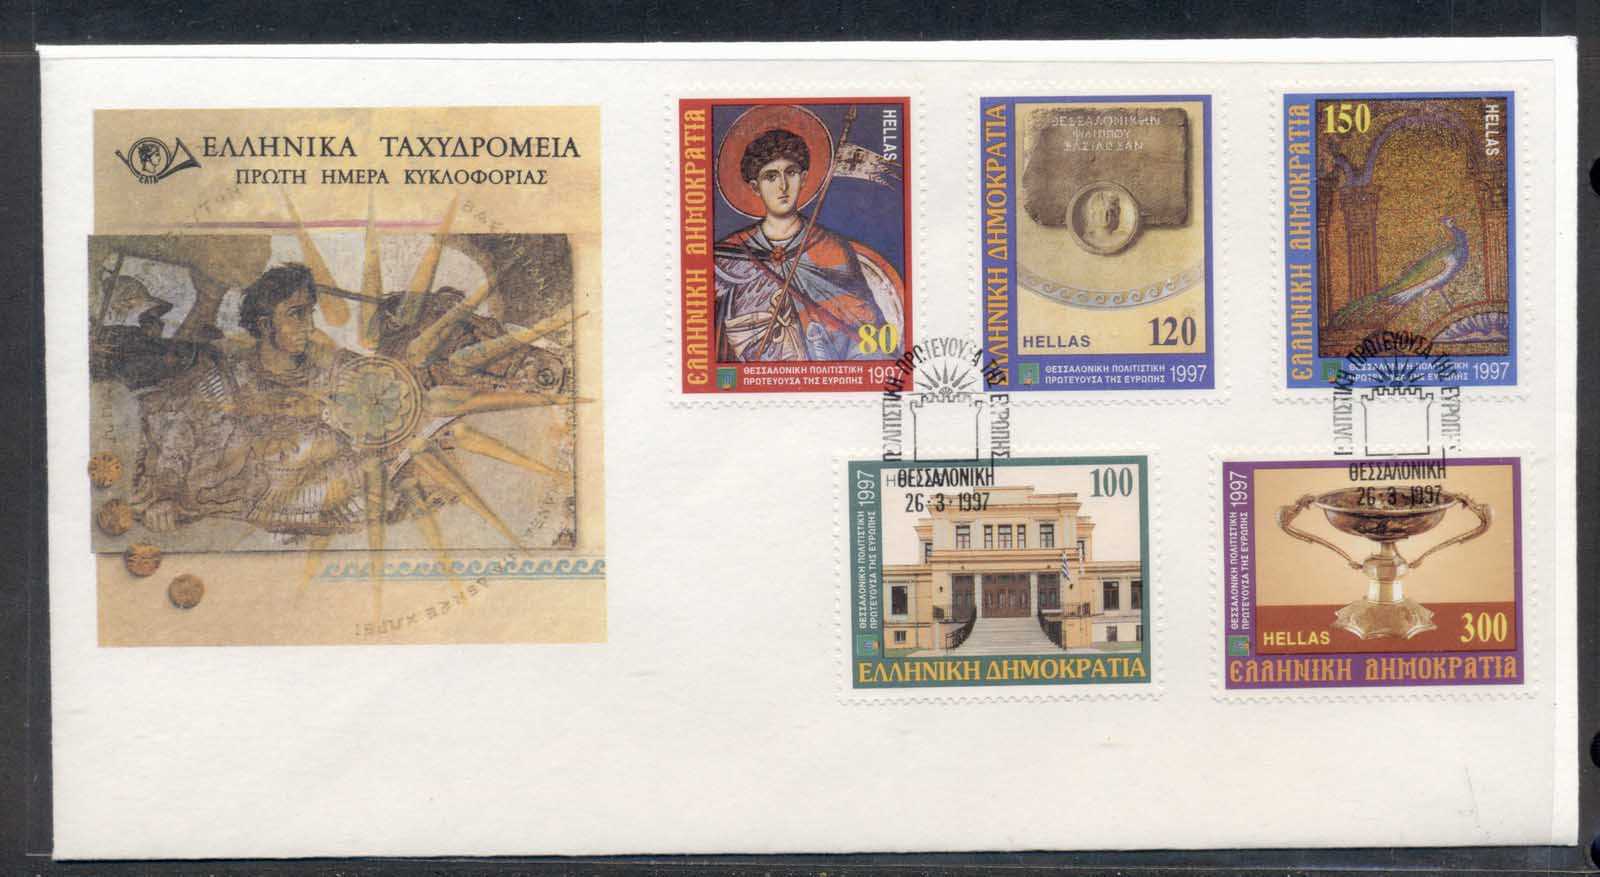 Greece 1997 Thessaloniki European Cultural Capital FDC - Click Image to Close